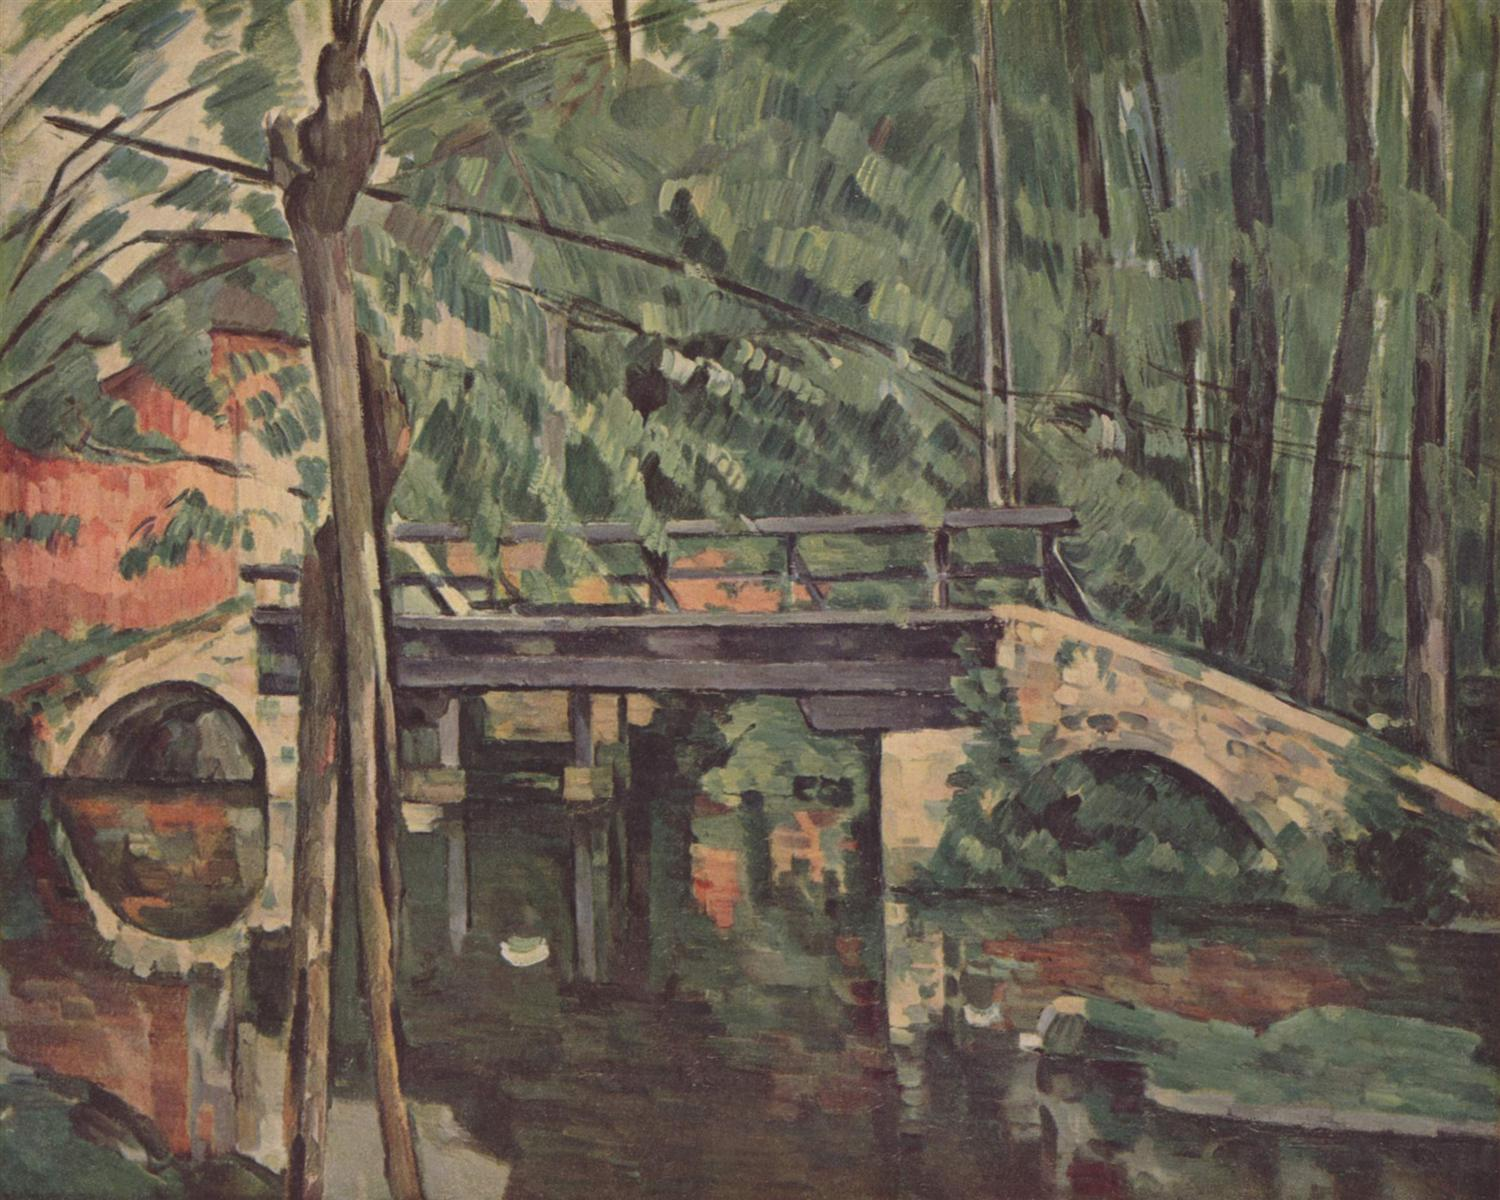 Paul Cezanne. The bridge at Maincy. 1879.